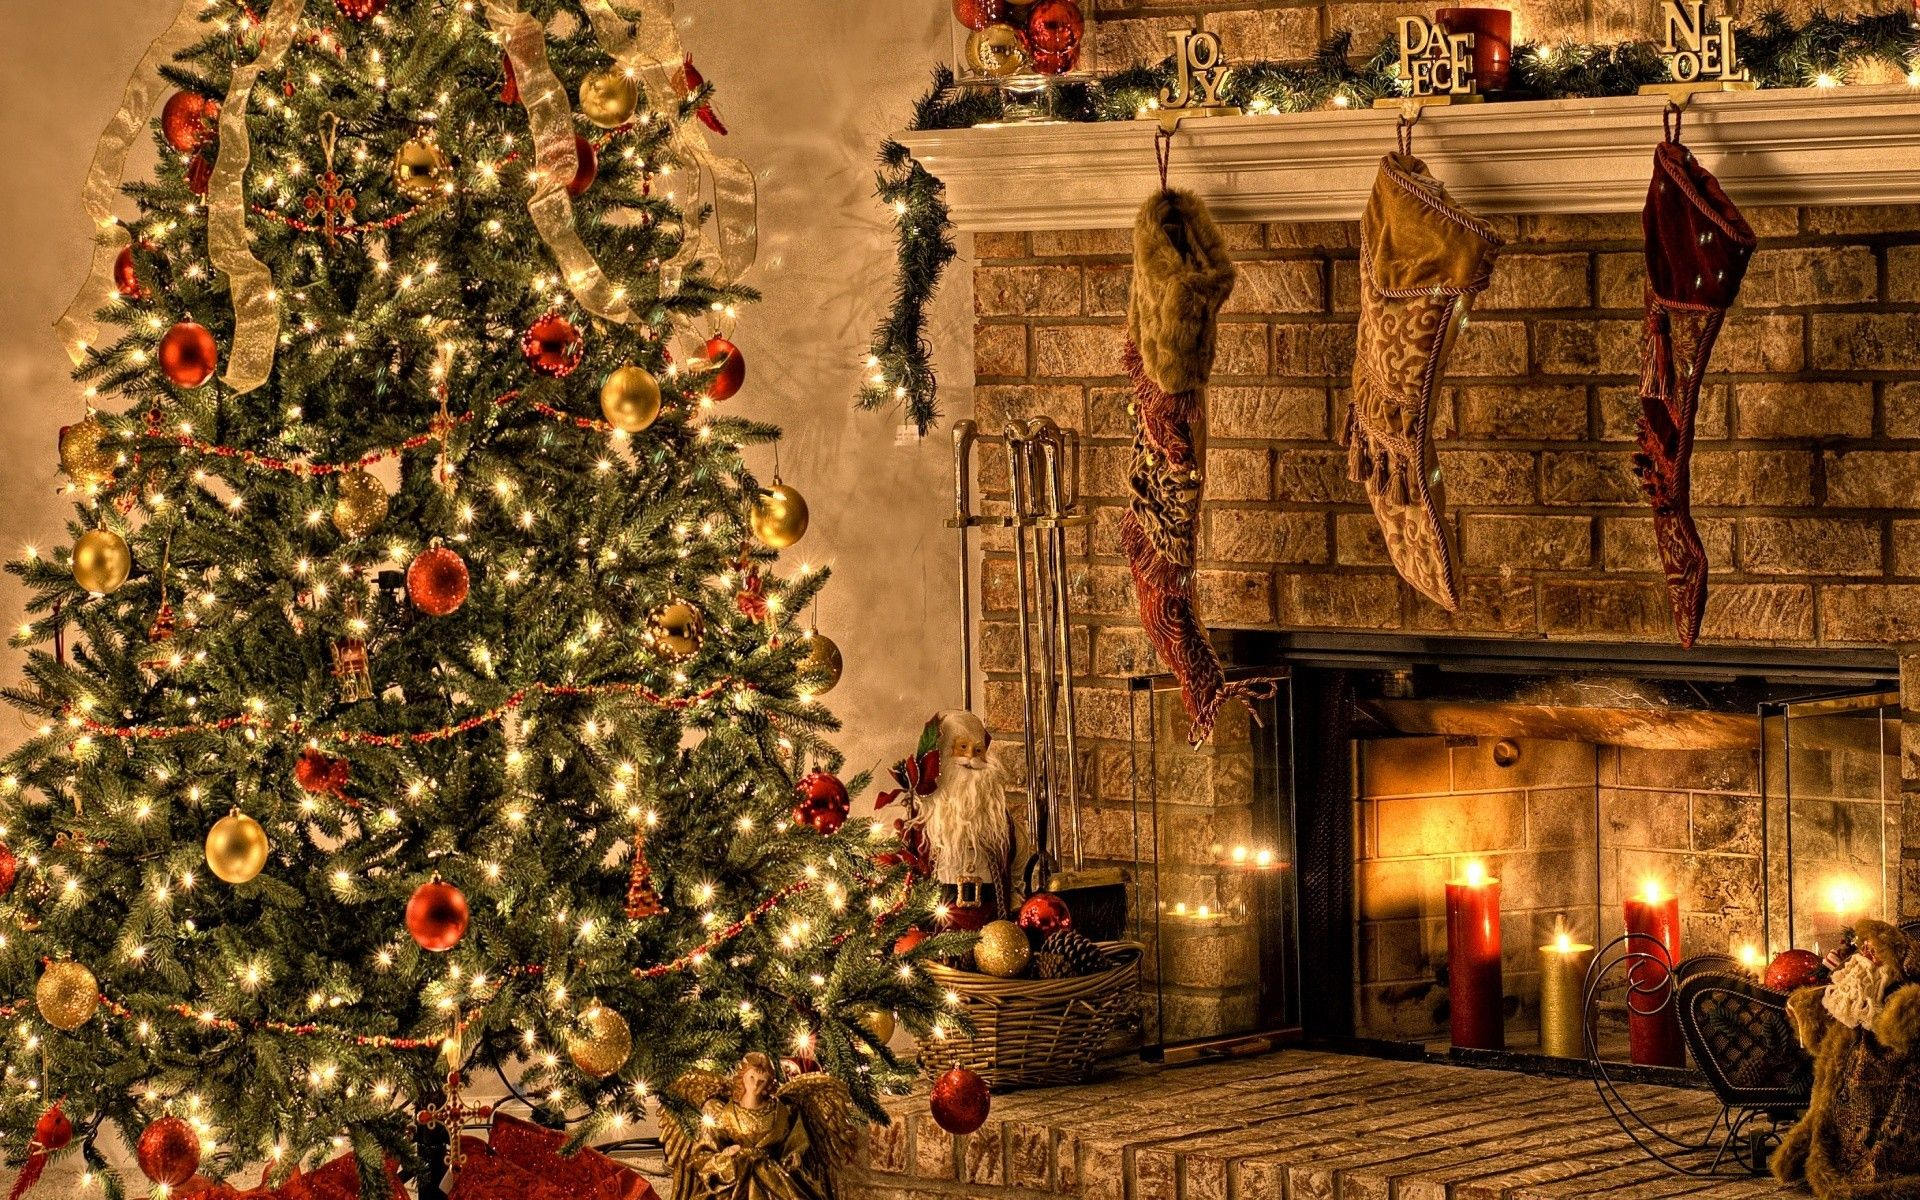 Hd Wallpapers For Laptop Android And Iphone Christmas Night Christmas Wallpaper Wallpaper Decor